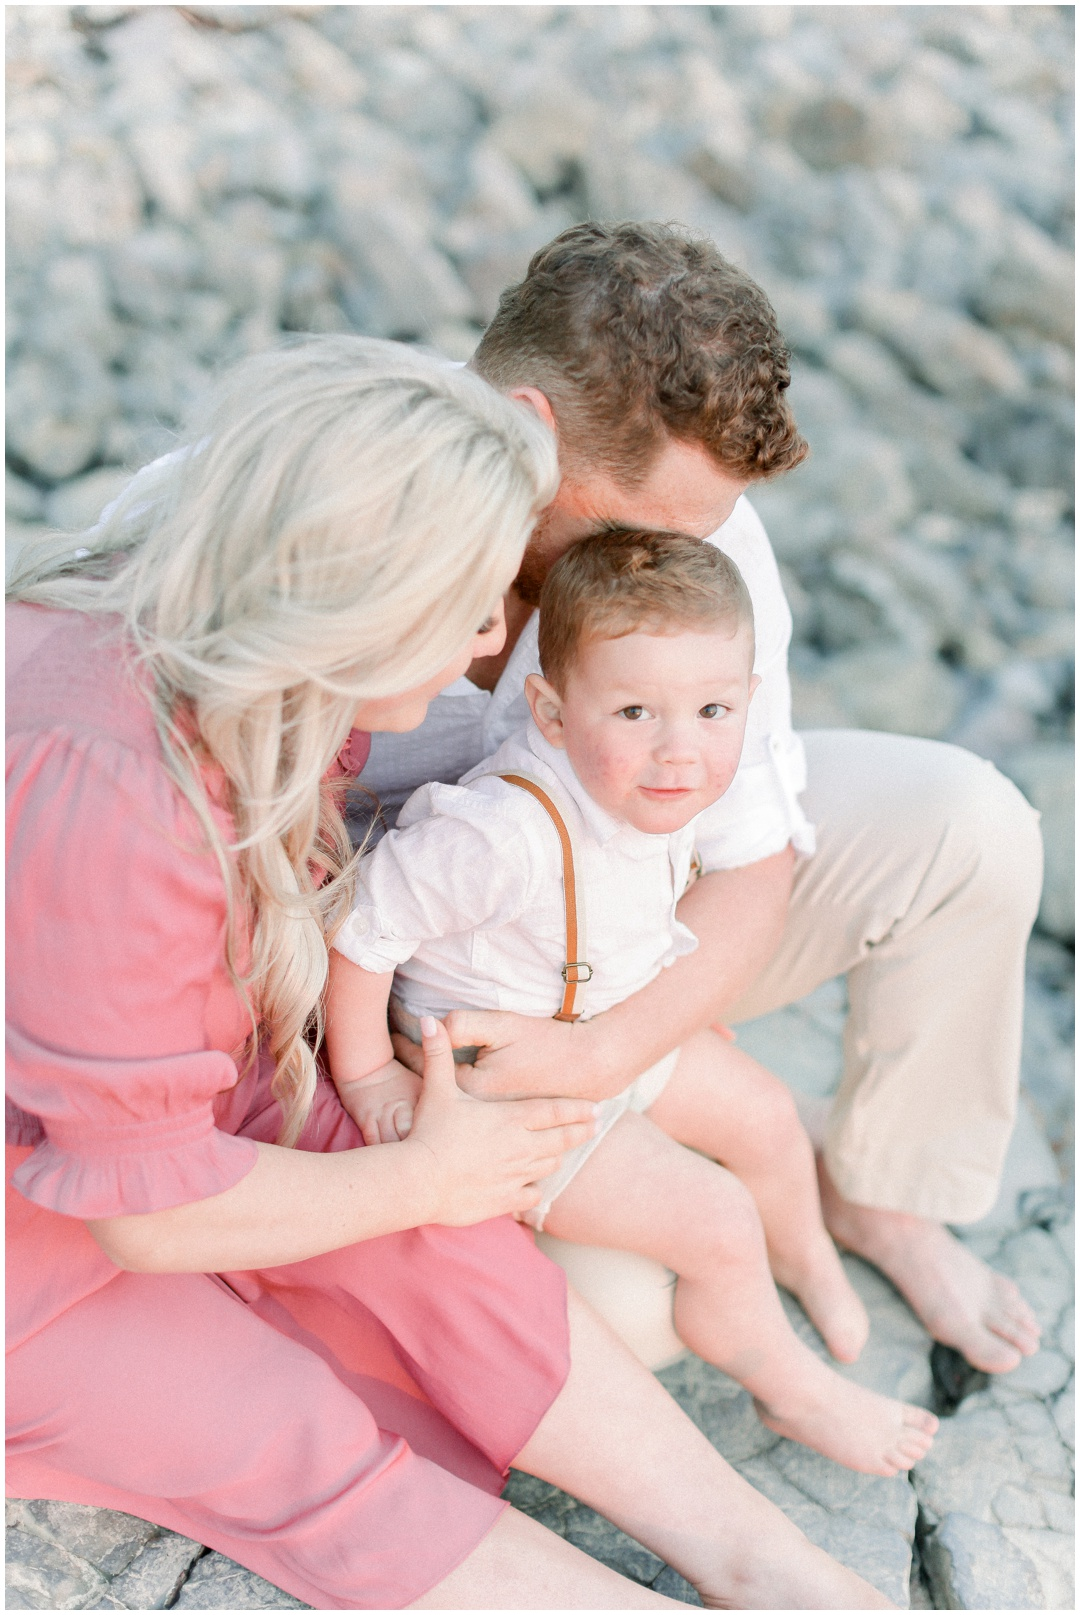 Newport_Beach_Newborn_Light_Airy_Natural_Photographer_Newport_Beach_Photographer_Orange_County_Family_Photographer_Cori_Kleckner_Photography_Newport_Beach_Photographer_Maternity_kole_calhoun56_kole_calhoun_Jennifer_Calhoun_Knox_Calhoun_3726.jpg